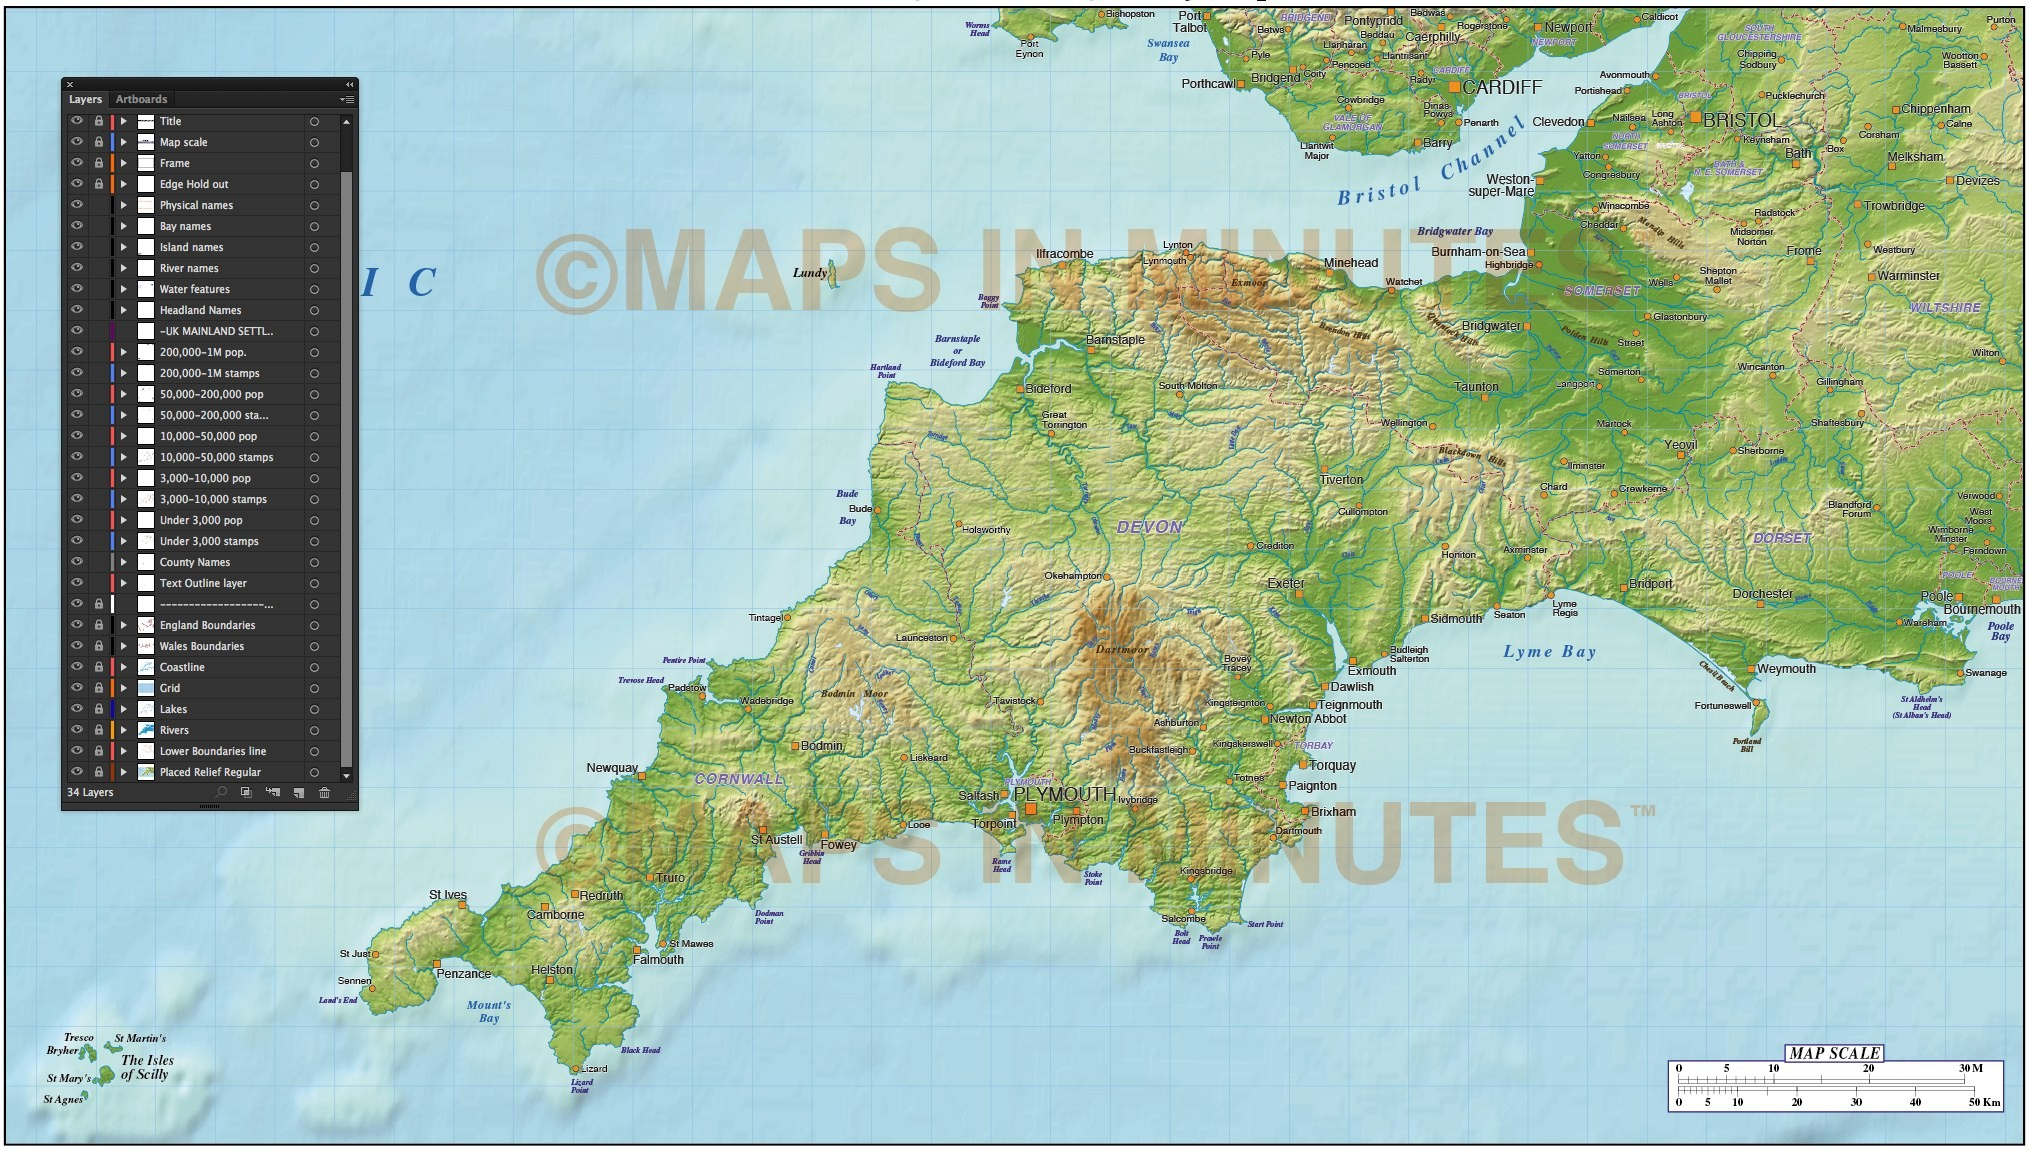 Surf map of South West England by Culture Trip for Culture Trip additionally Cornwall   West Country Map Vintage map from Atlas 1950s in addition  additionally 01 South West England   Postcode District Map   PDF   Map Stop   Top in addition South West England  climate   Met Office likewise West Country Map   South West England furthermore Amazon    WALES   SOUTH WEST ENGLAND  inset Bristol Swansea also South West England   South Wales A Z Road Map   Stanfords together with Maps And History In South West England   Roger J  P  Kain likewise West of England  bined Authority   Wikipedia besides South West England ac modation likewise The weather in South West England region moreover Map of south england counties and travel information   Download free also South West England County Map with strong relief  1 000 000 scale in moreover Unexpected England  An Interactive Map of South West England's moreover ASGBI Link Surgeons Website. on map of south west england